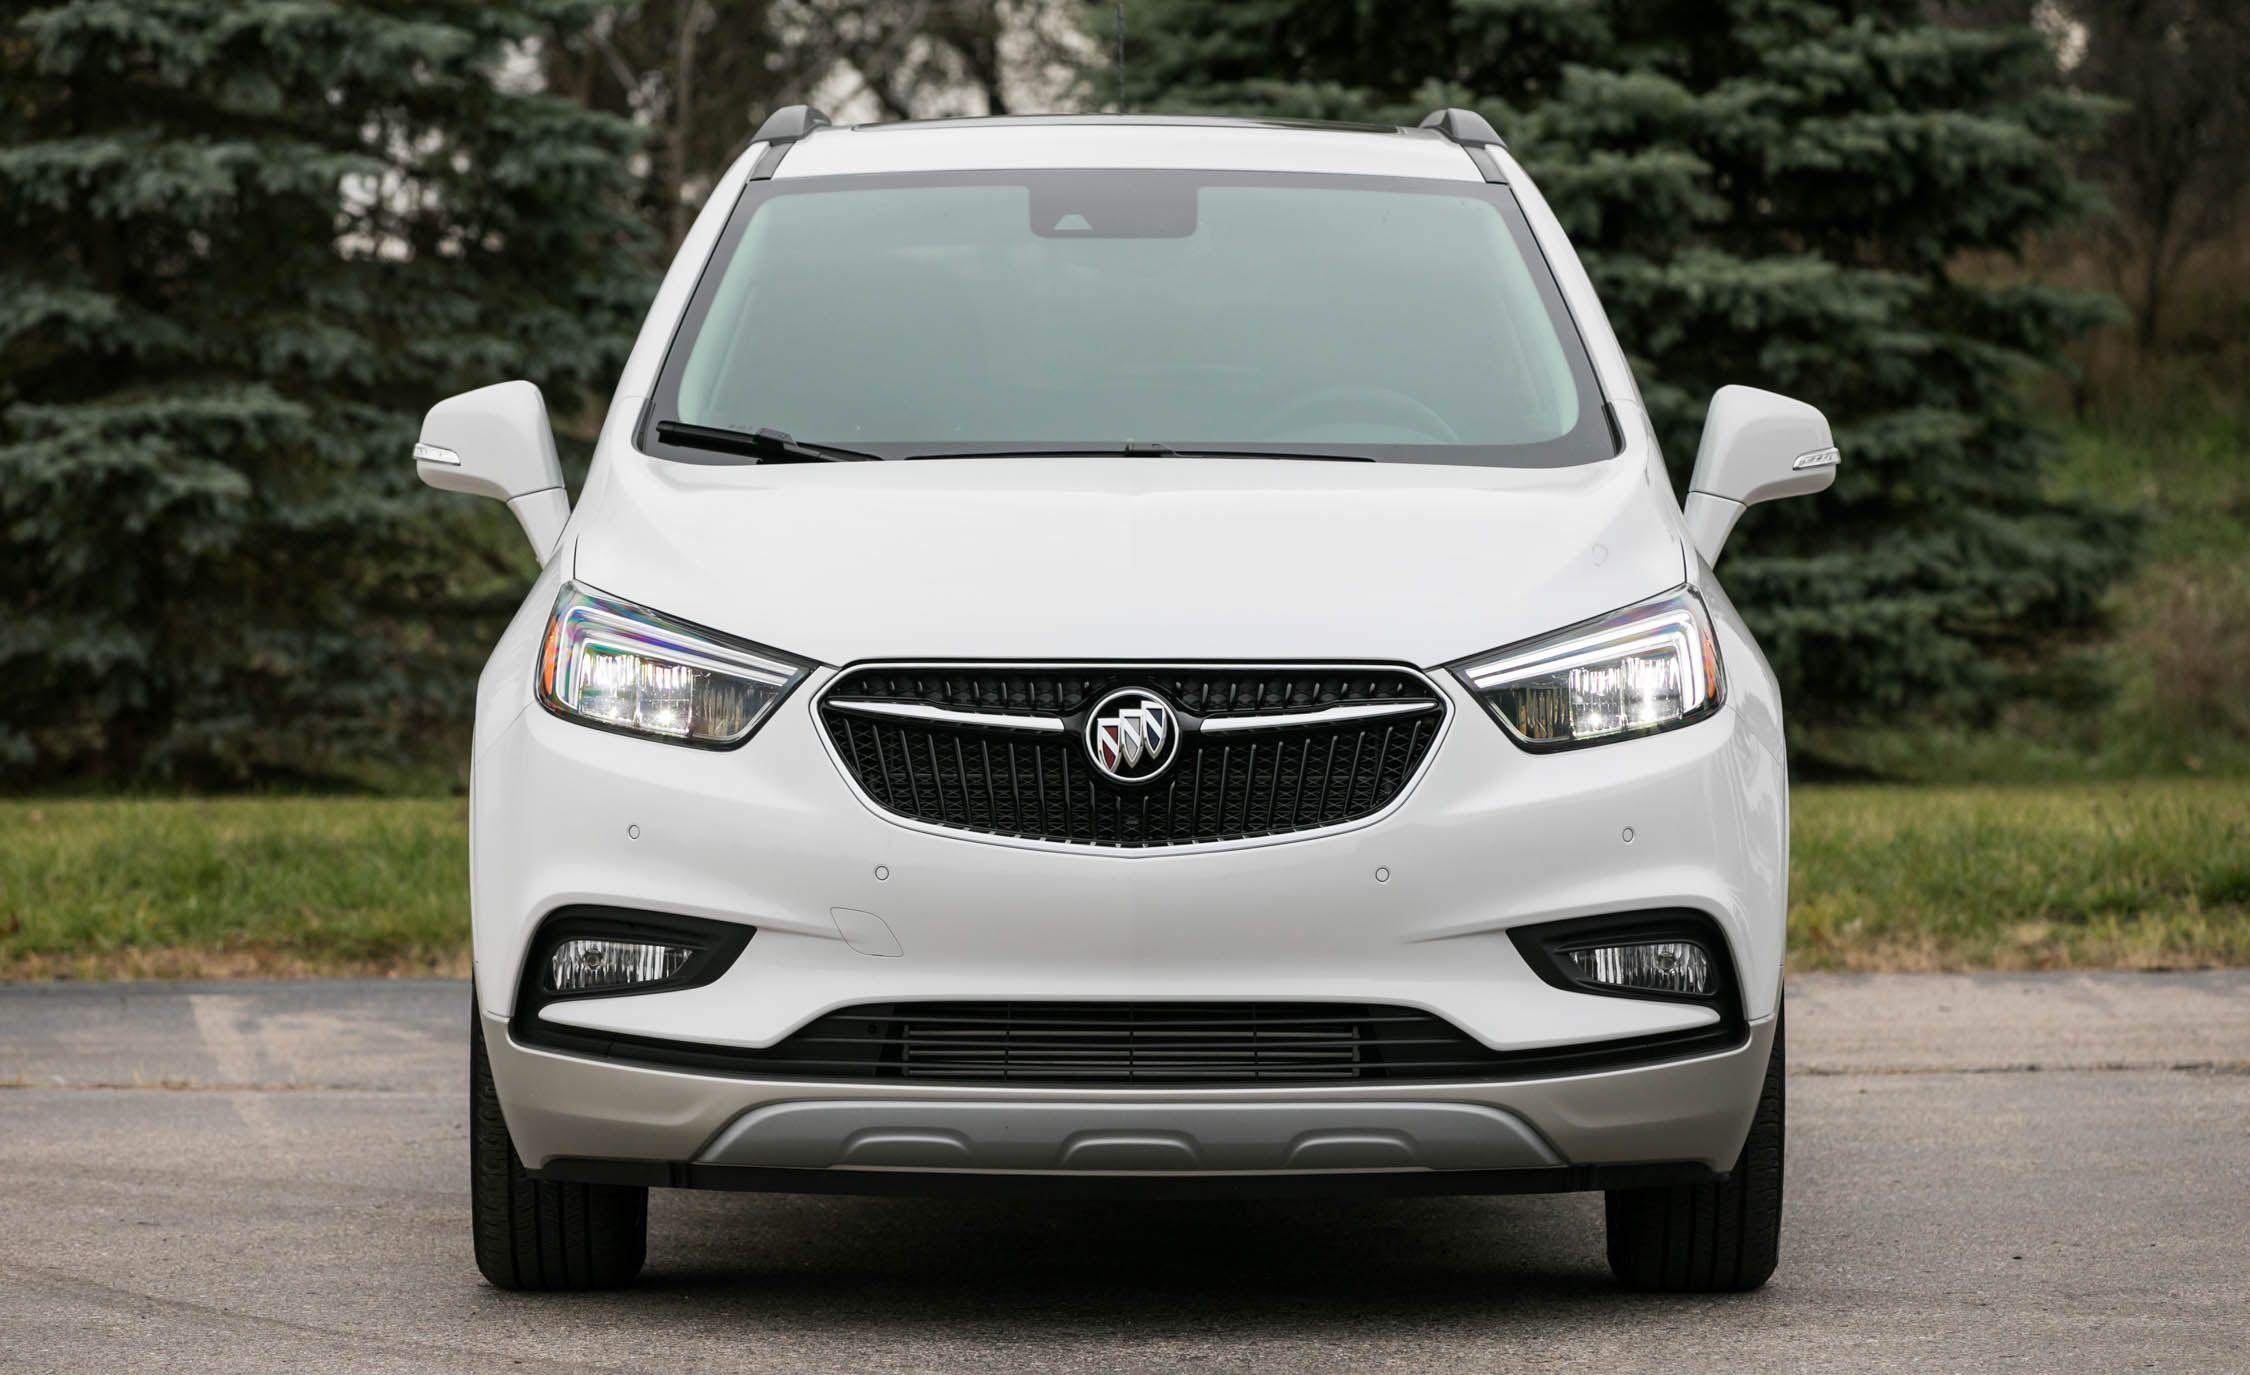 Buick Encore Reviews | Buick Encore Price, Photos, and Specs | Car ...